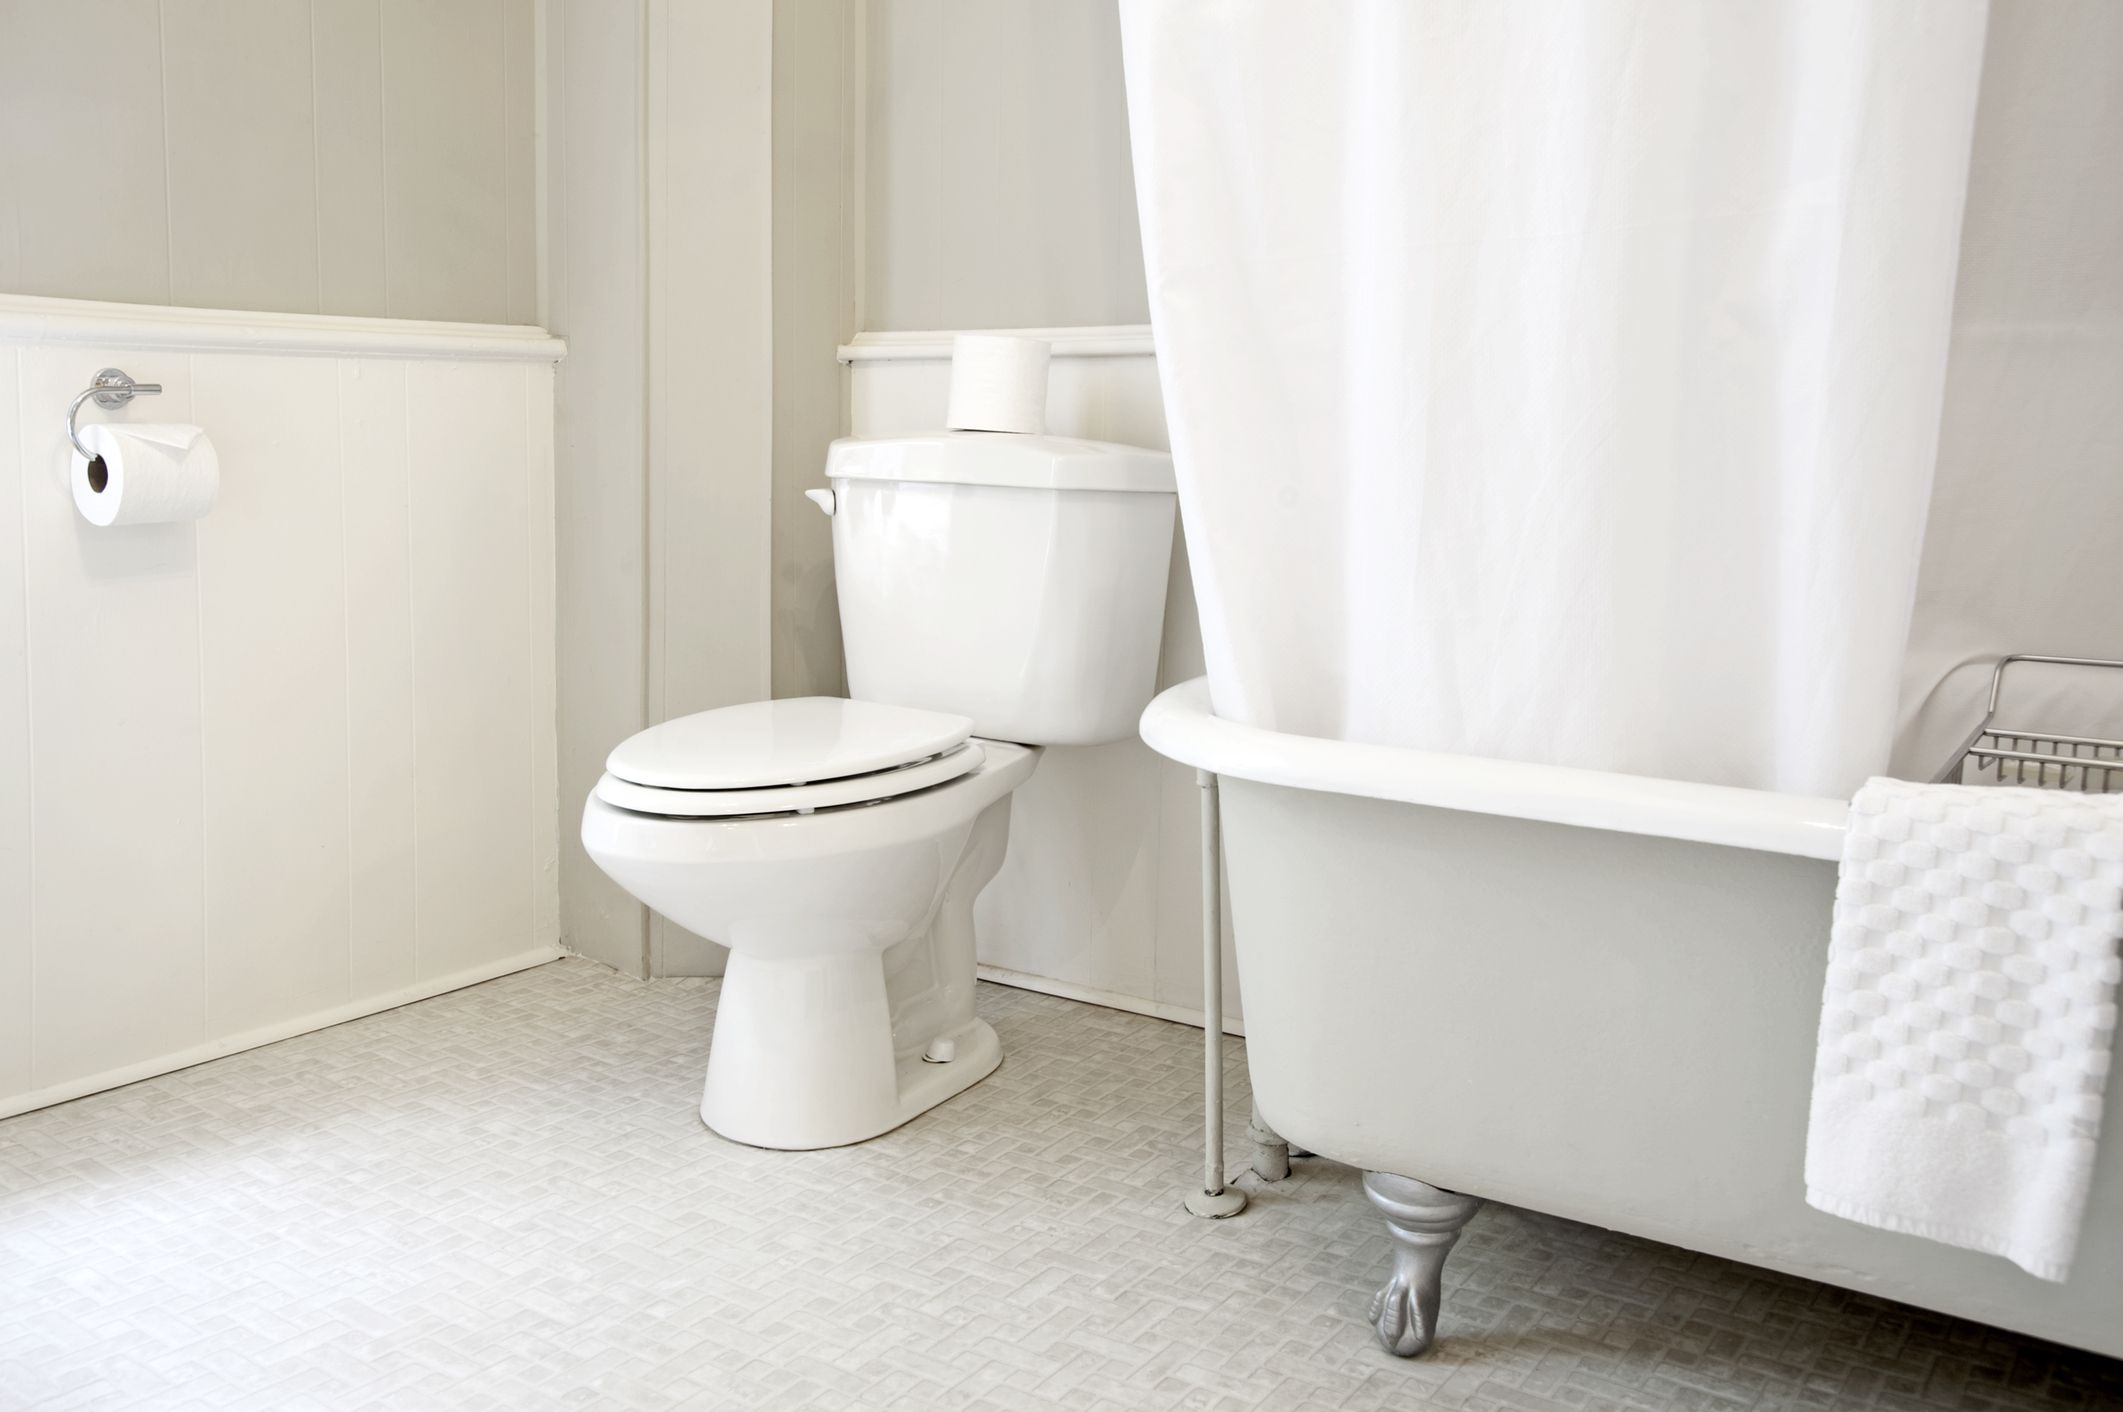 Easy Fix for a Wobbly Toilet. How to Tighten Up a Loose Toilet Seat